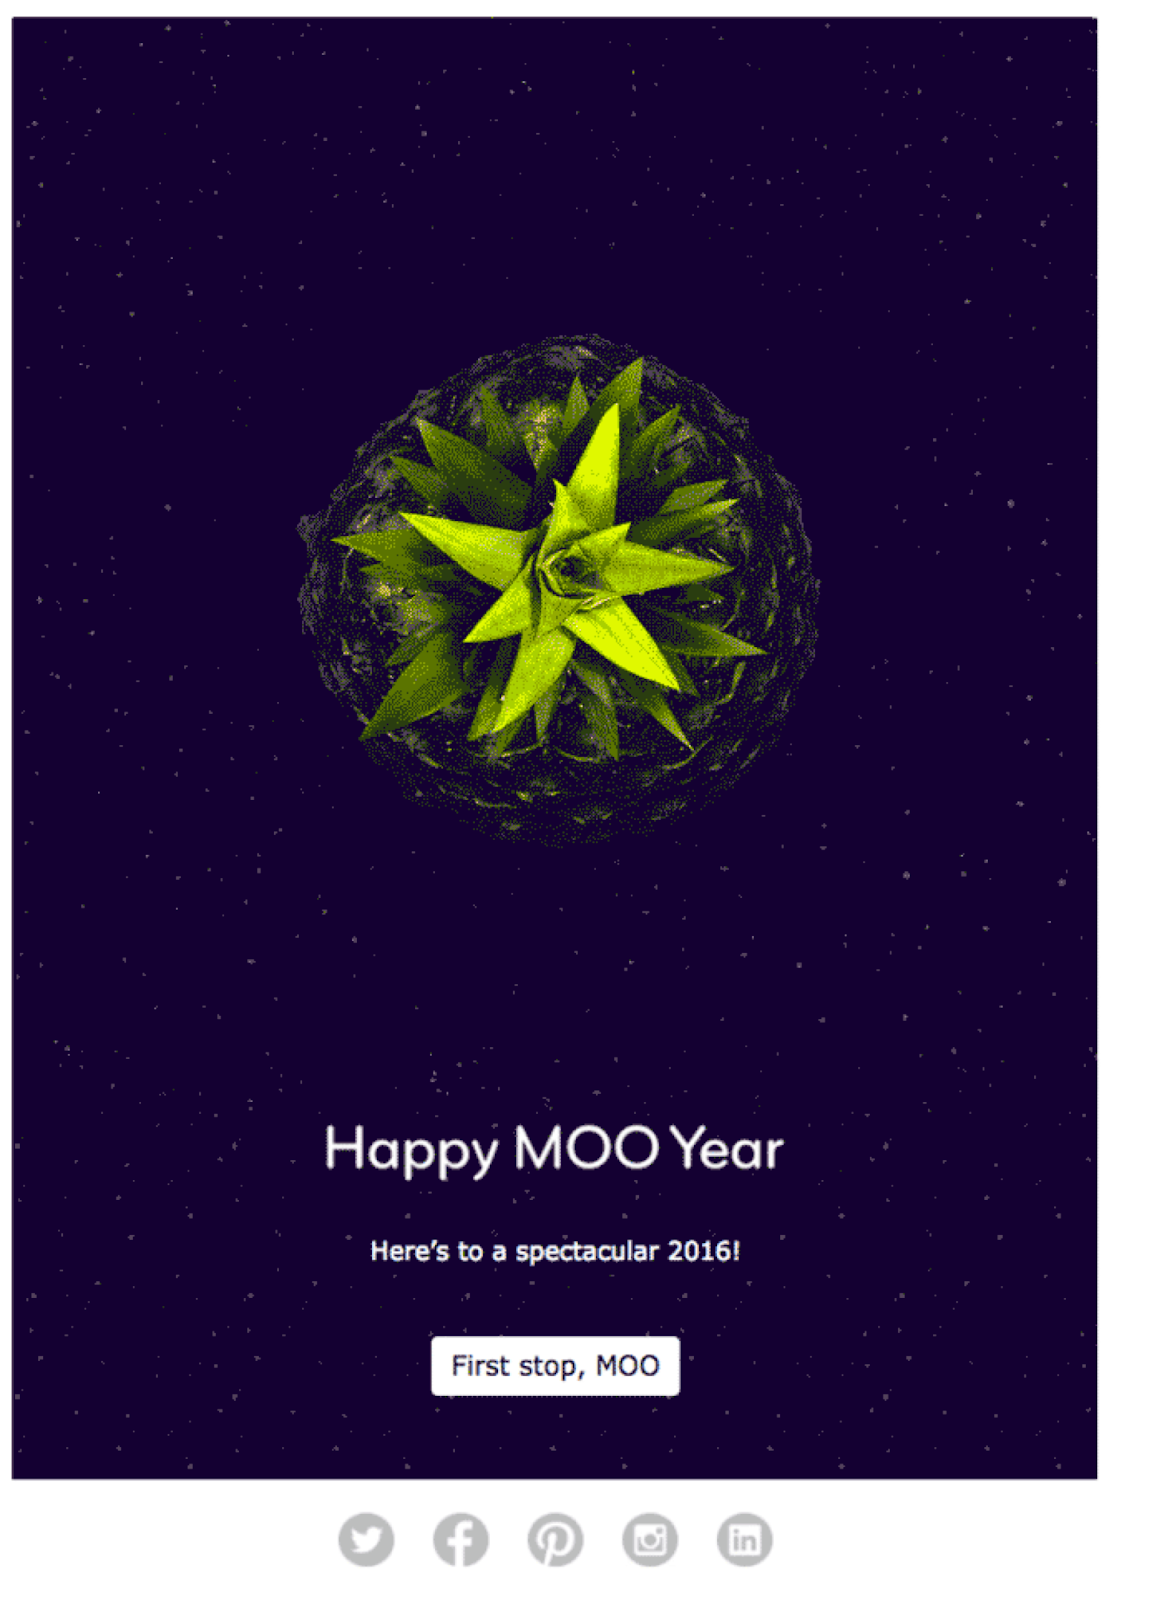 Moo New Year #Emma #NewYear #email #Marketing #ad